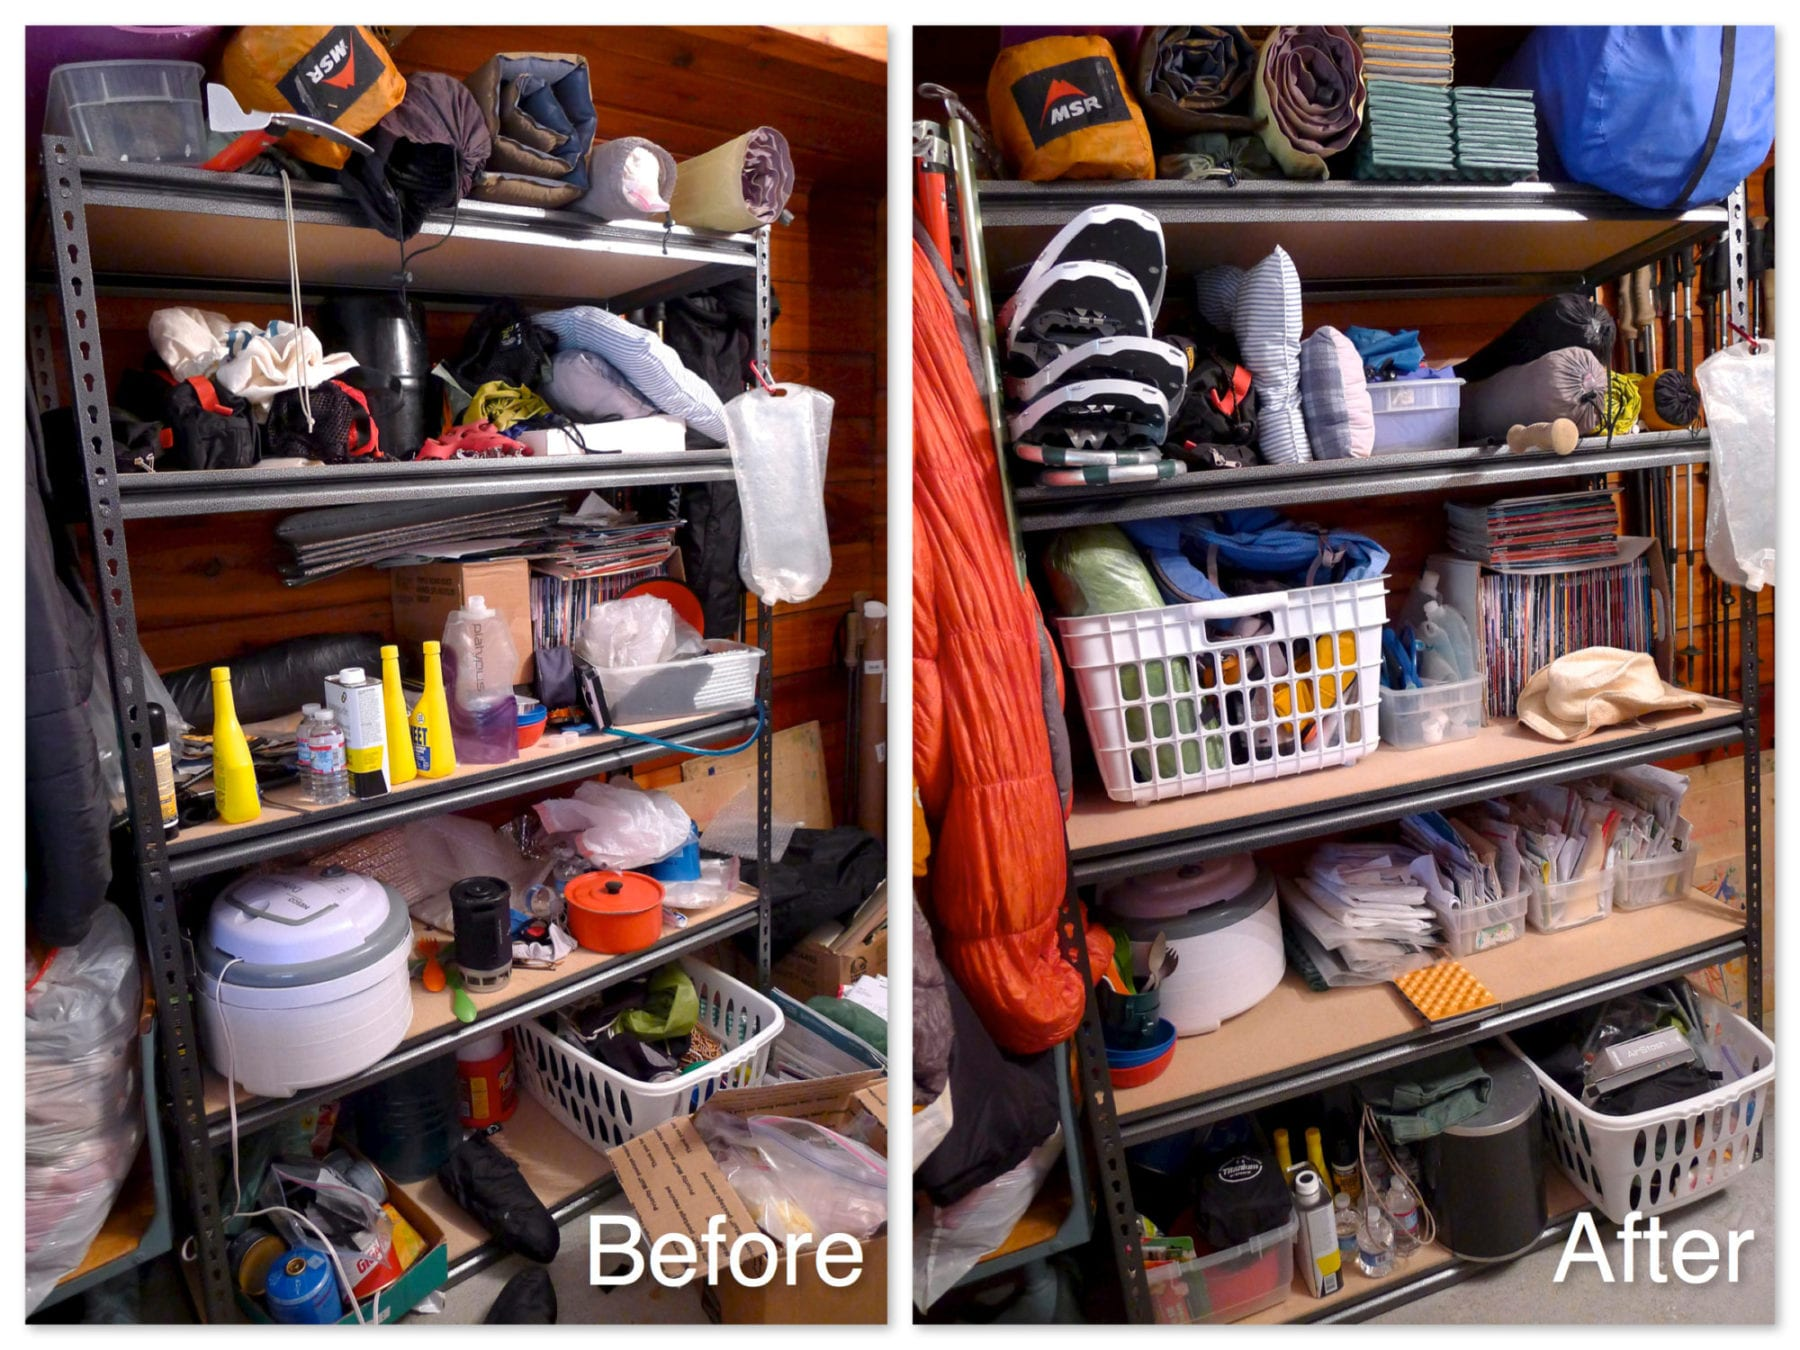 Before and After - Gear Closet